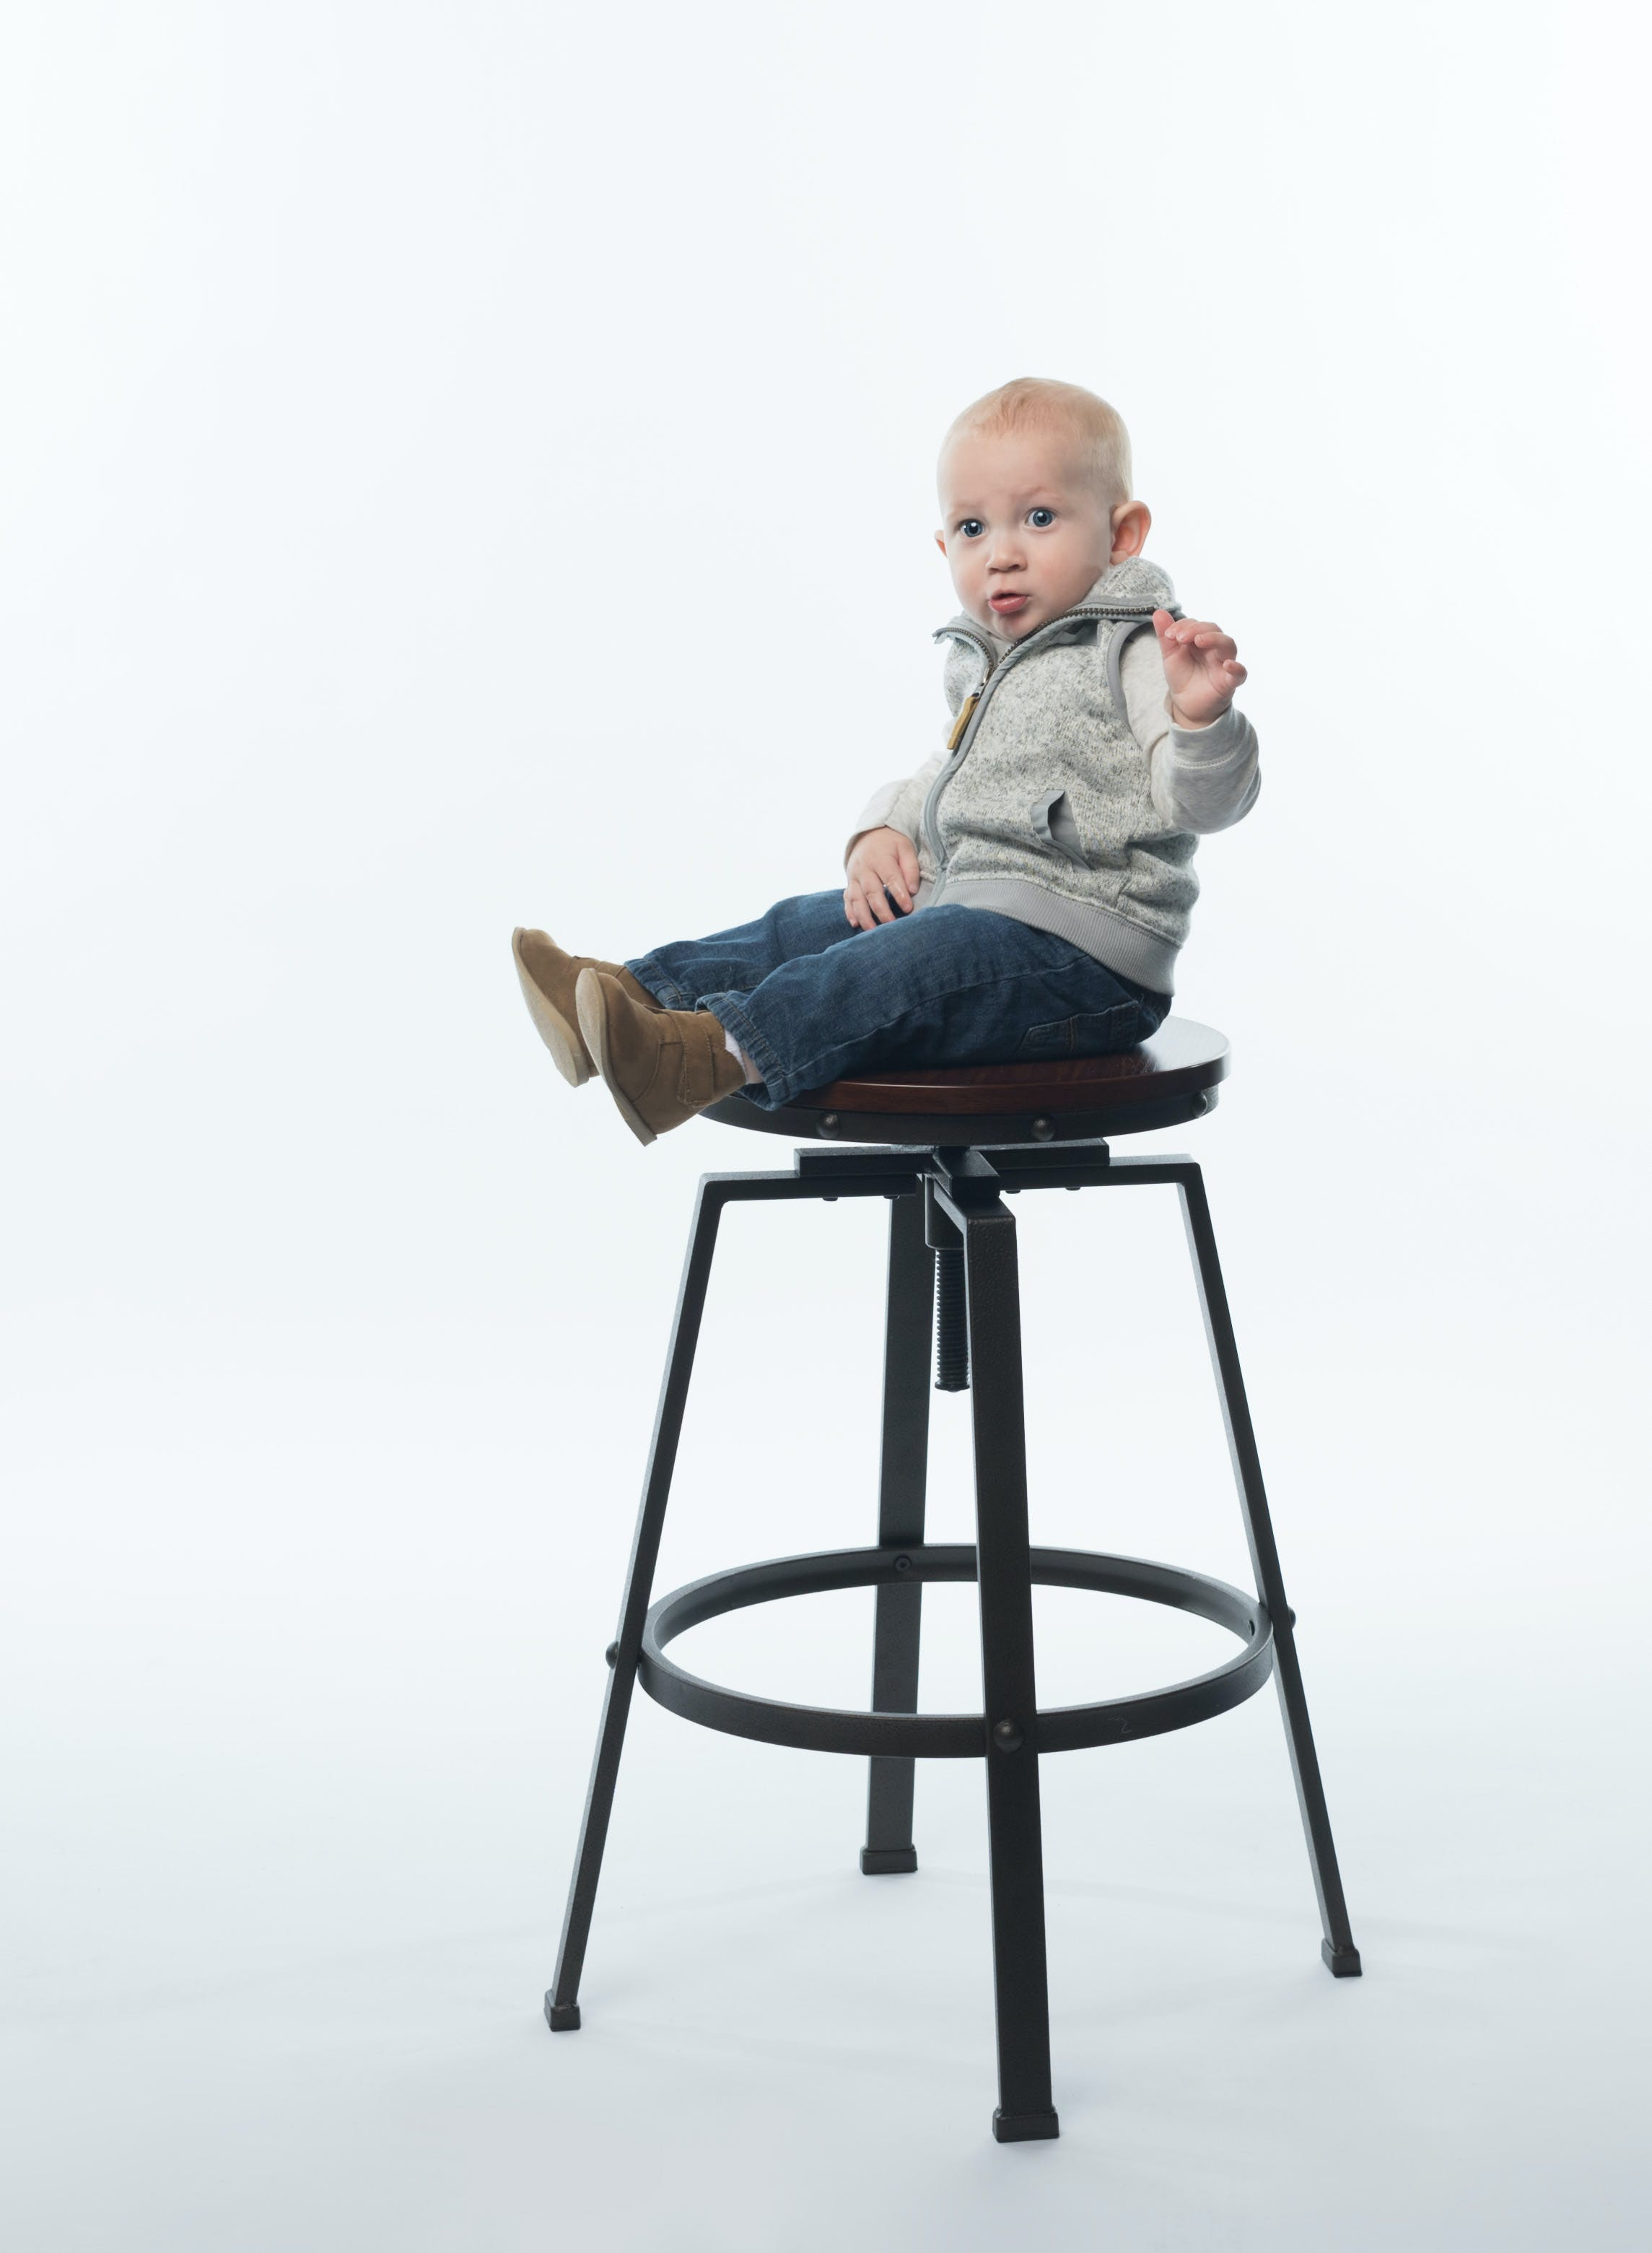 Child on Steel Framed Stool